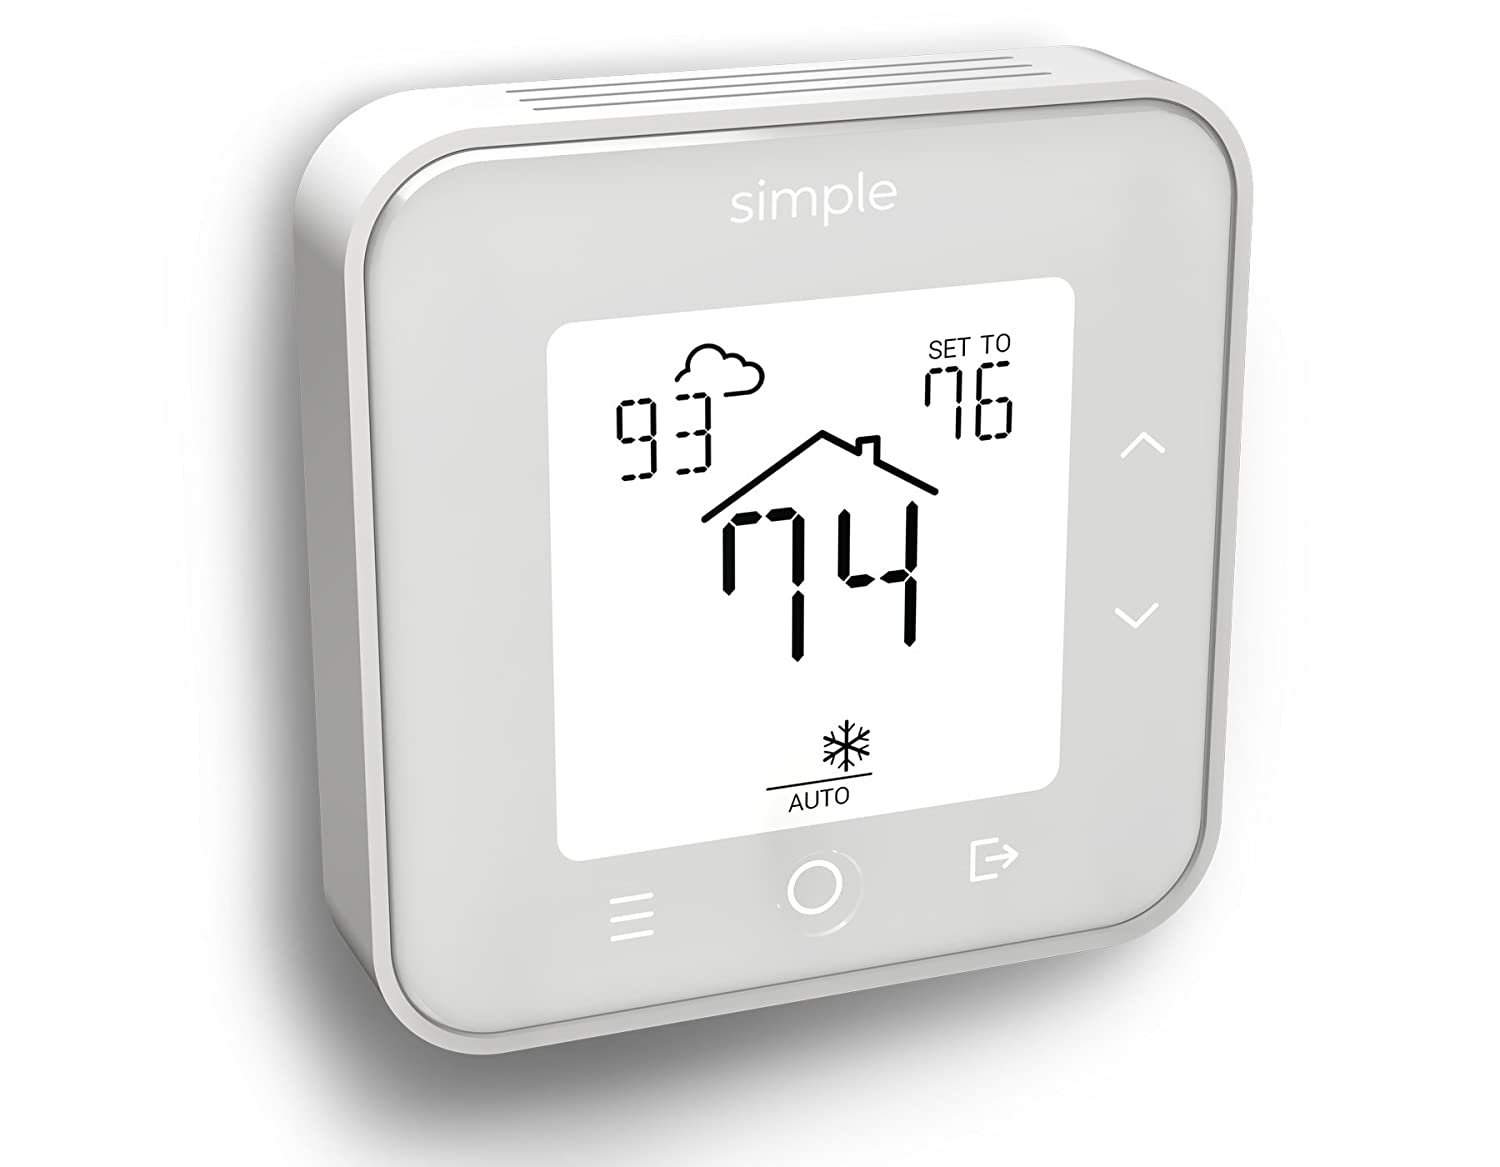 The Simple Thermostat, Energy Star Wi-Fi Smart Thermostat With Mobile App, 7 Day Schedule, Compatible with Alexa (Black With C-Wire) - - Amazon.com